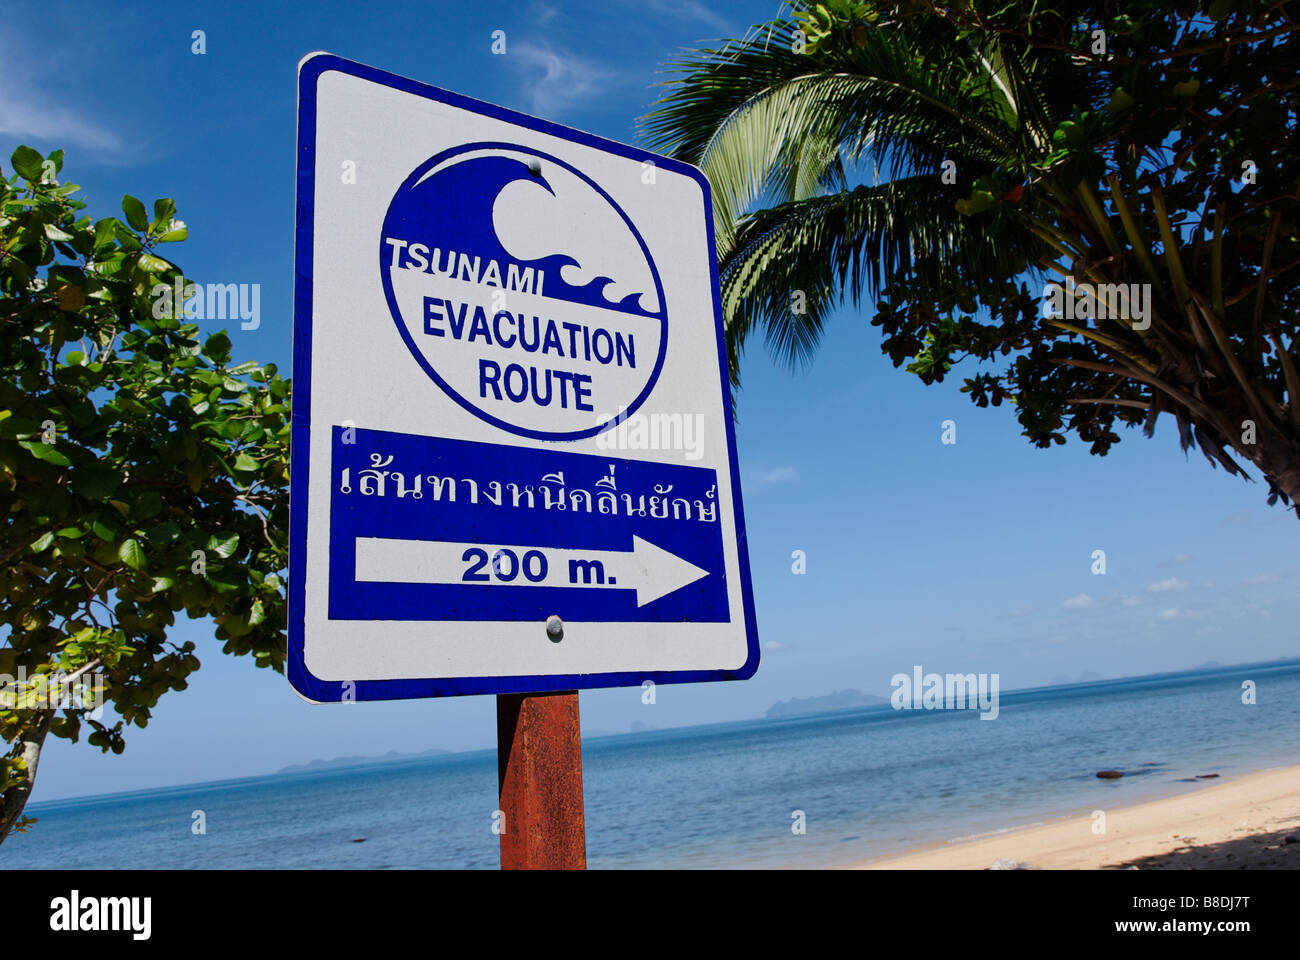 Tsunami hazard zone sign on Koh Libong island Thailand - Stock Image